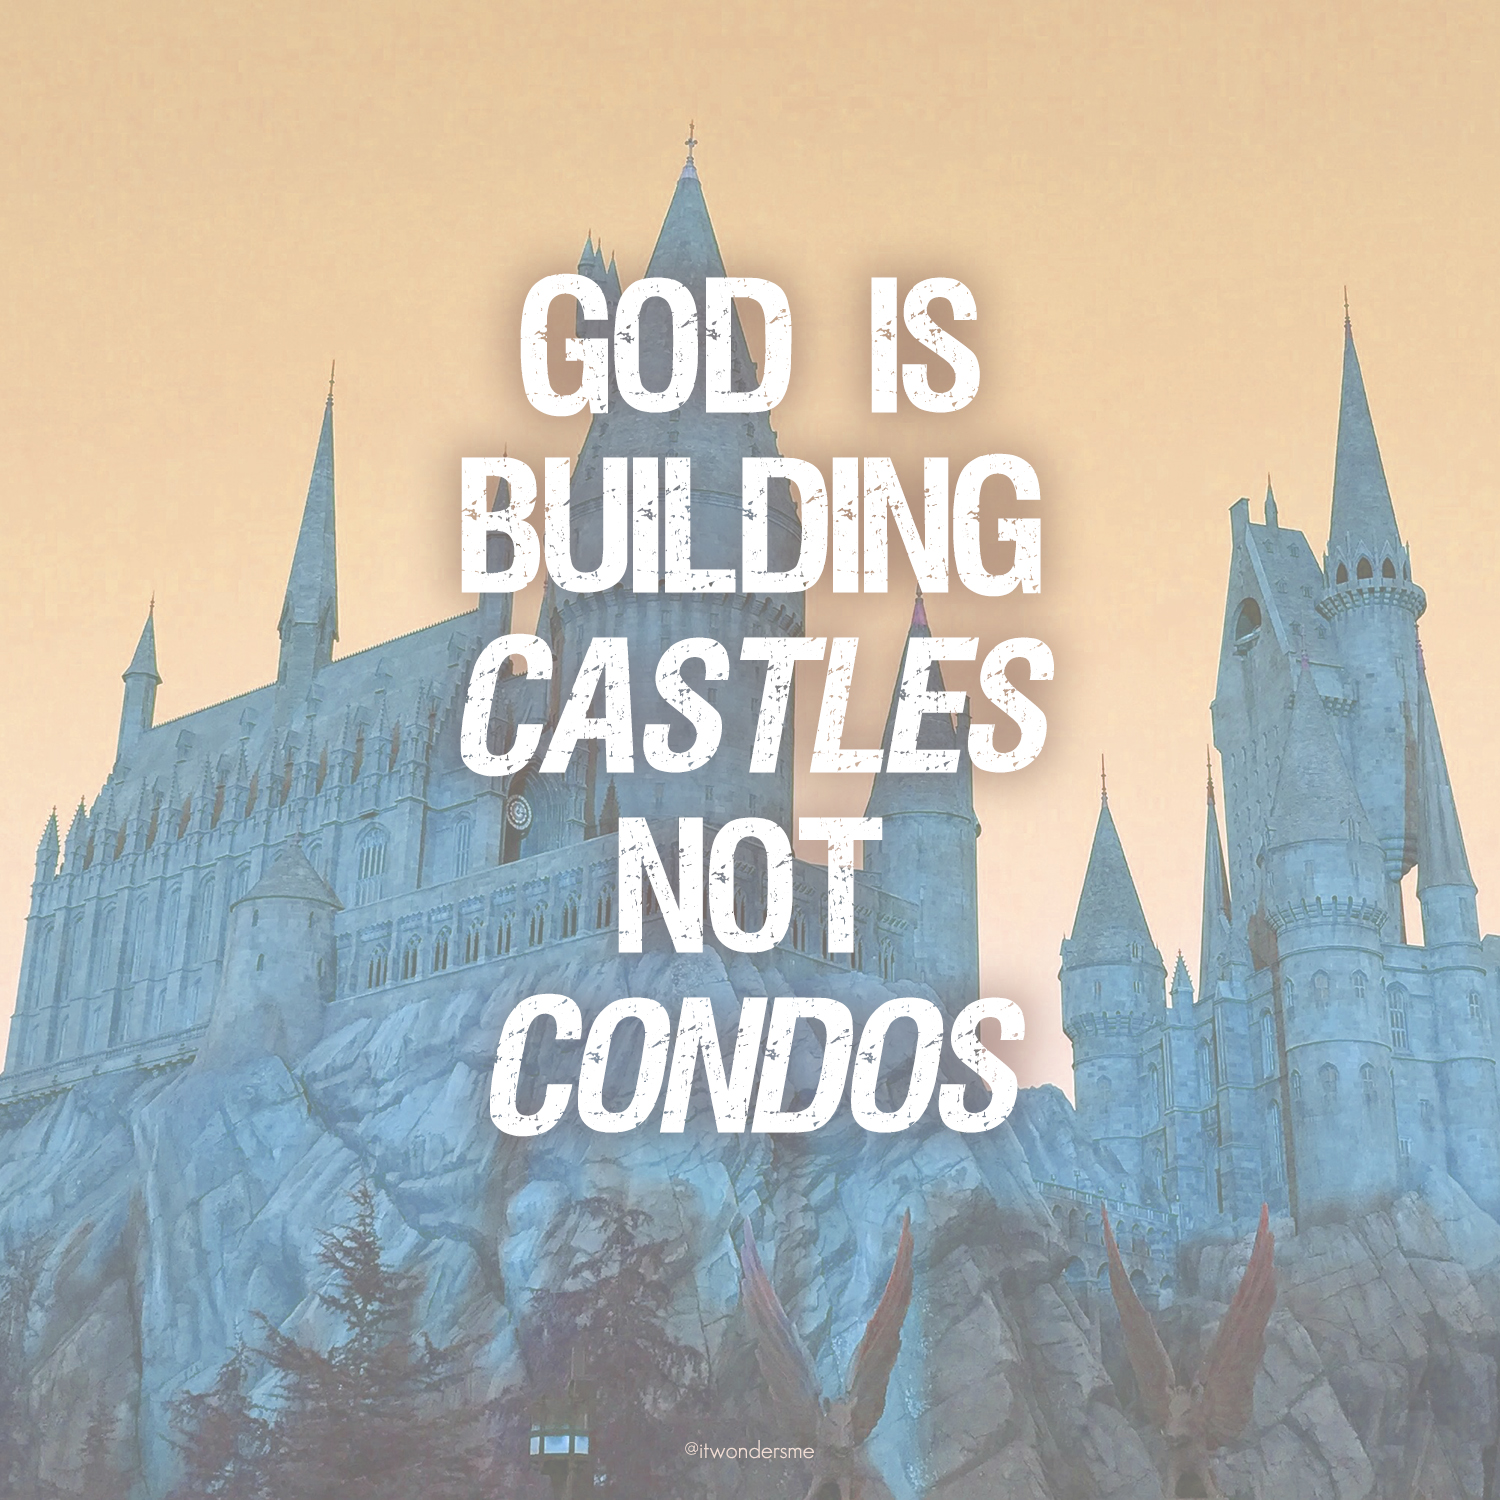 God is building castles, not condos